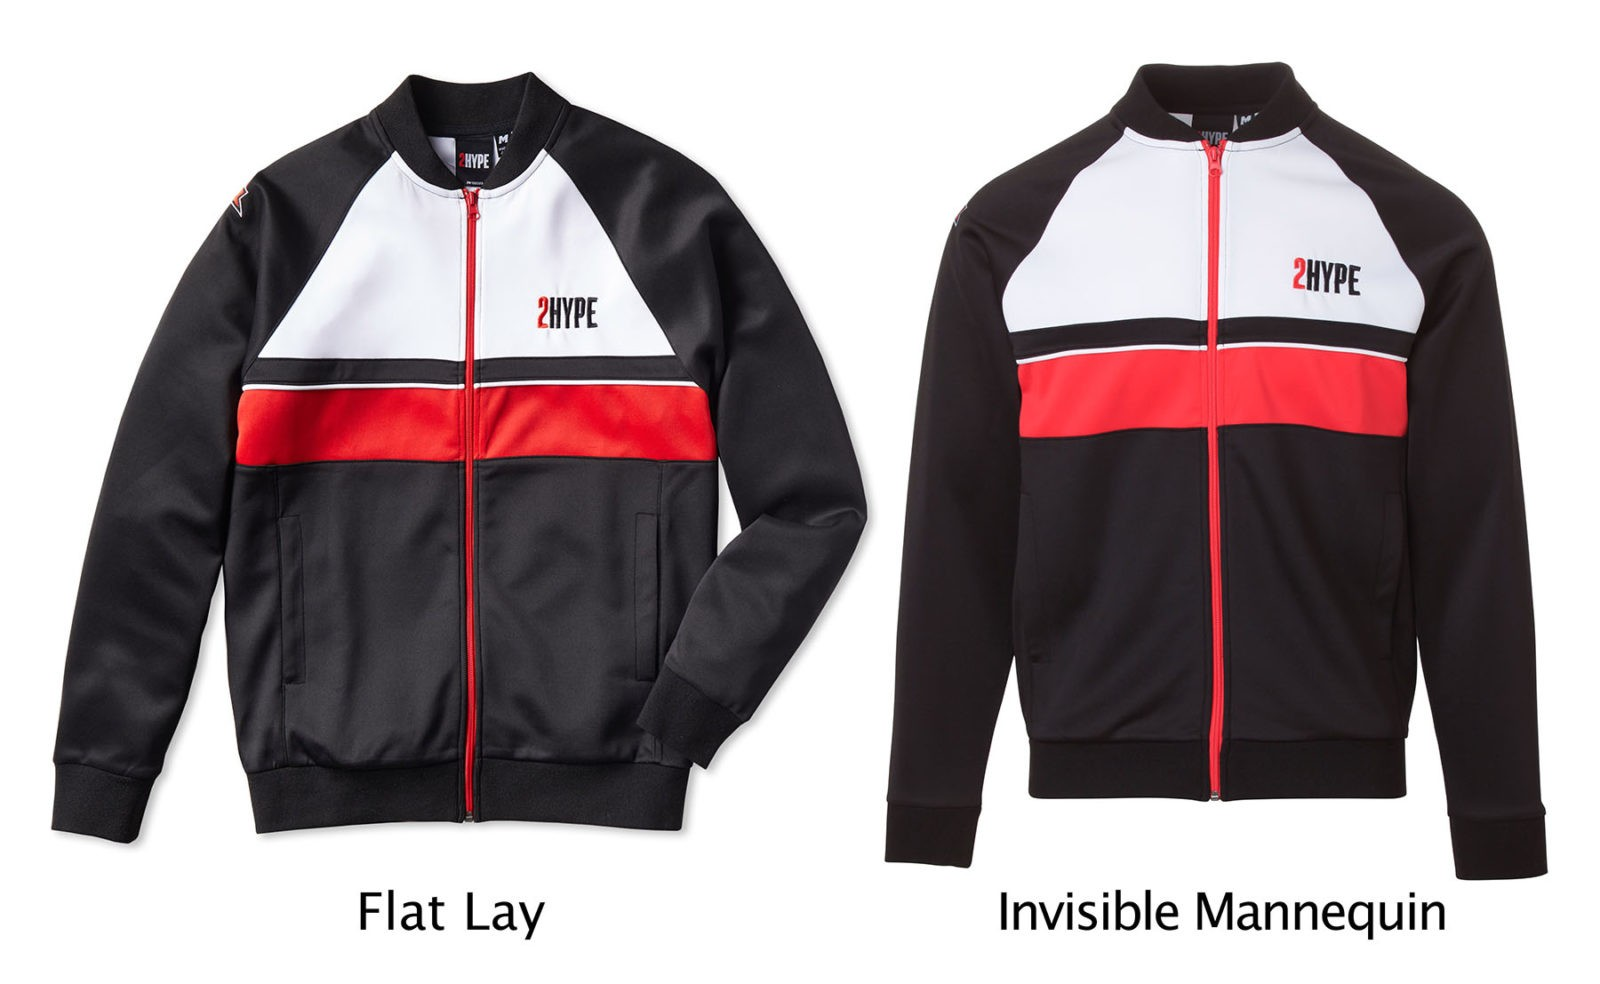 Invisible Mannequin vs Flat Lay